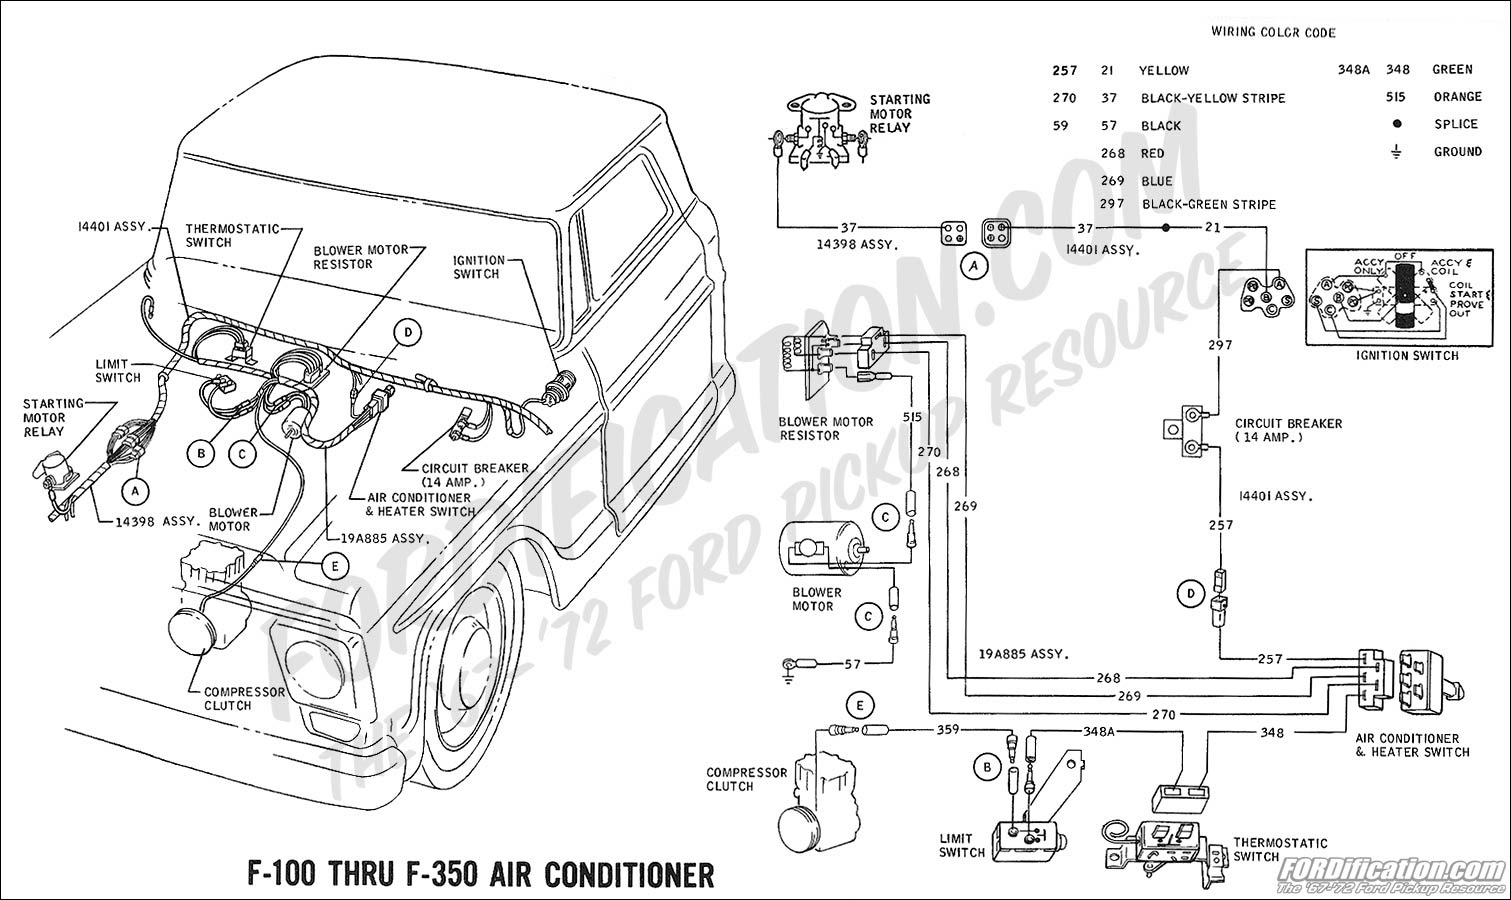 Ford F150 Air Conditioning Wiring Diagram | Wiring Diagram